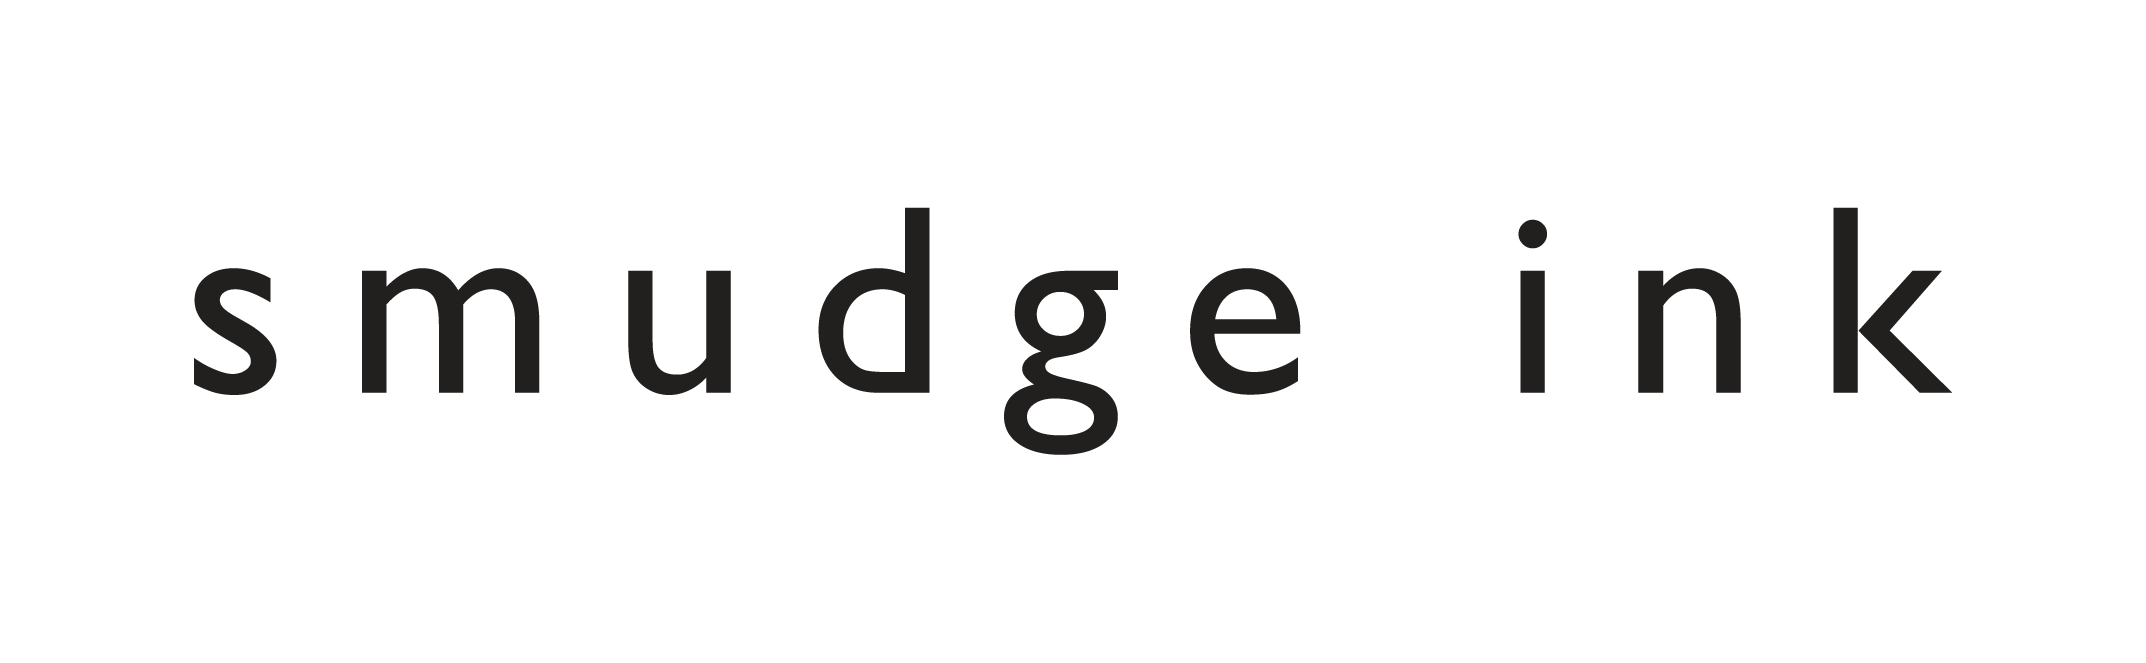 Smudge Ink logo